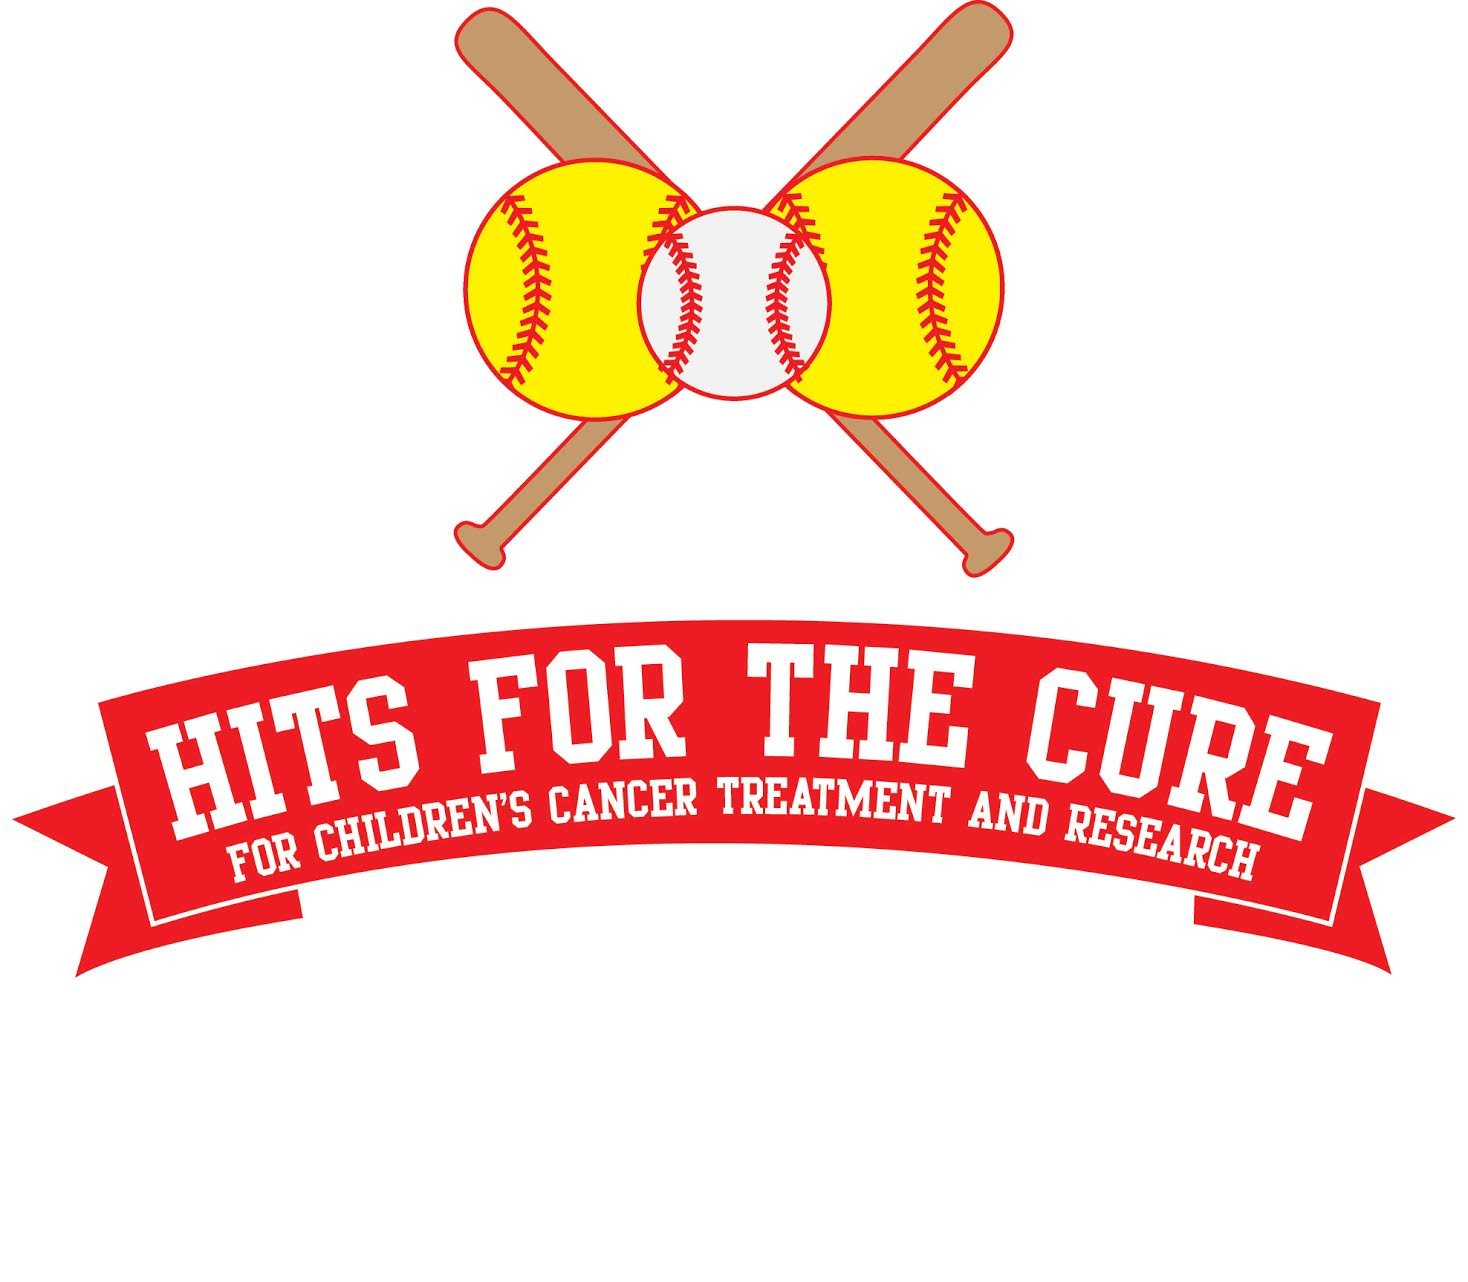 Hits for the Cure